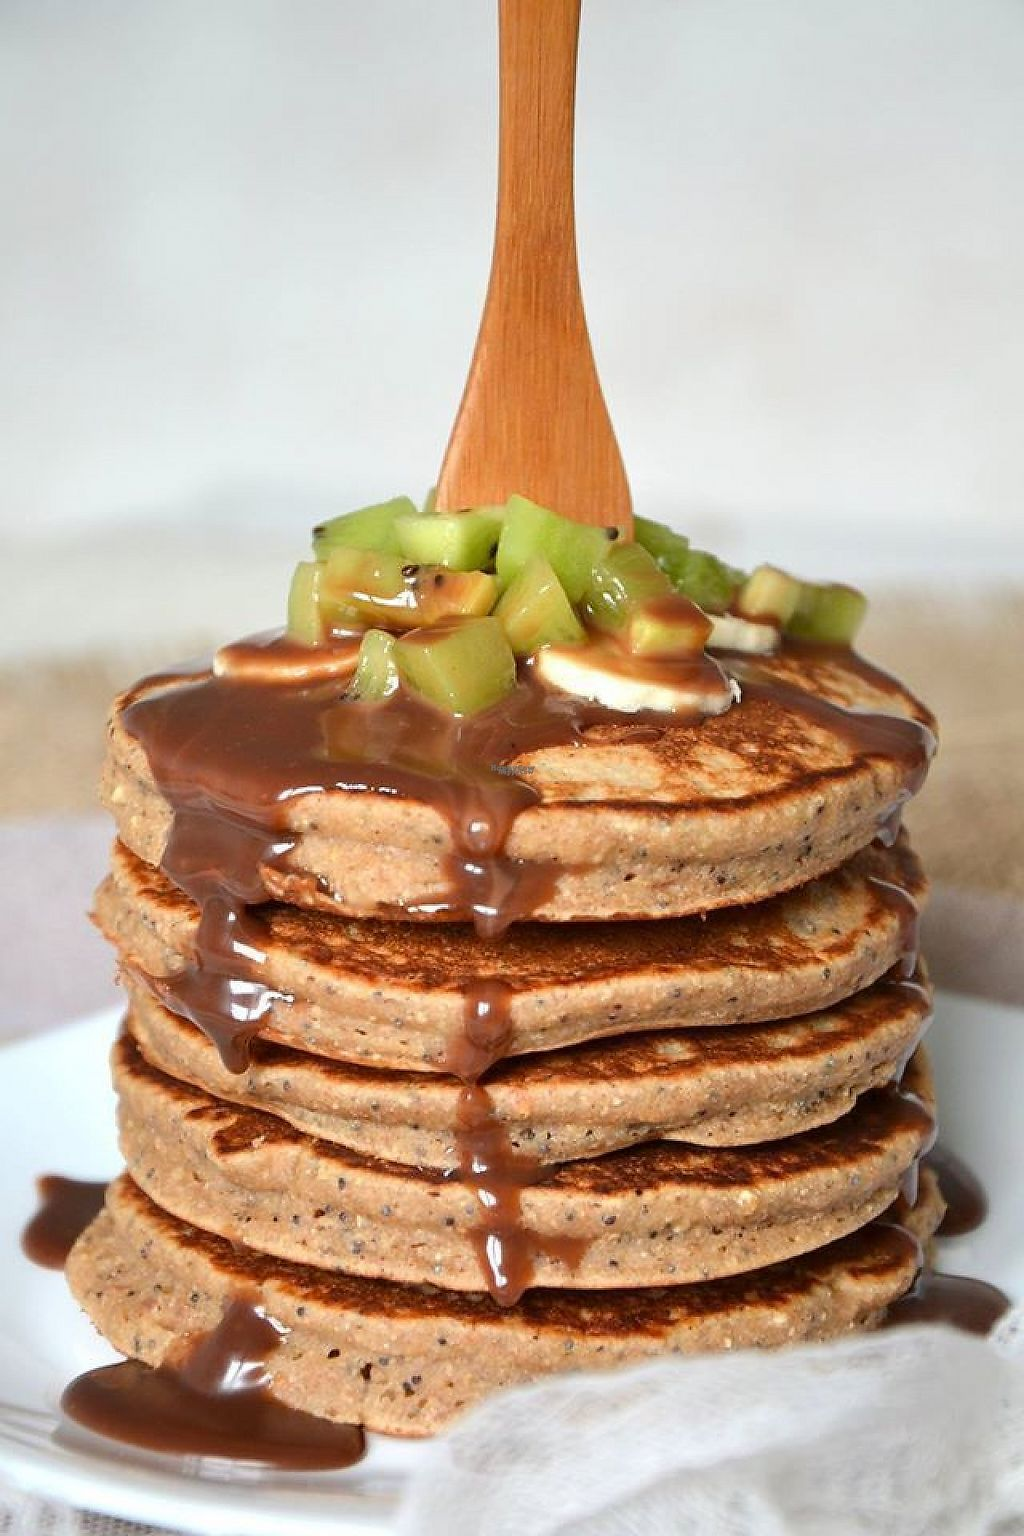 """Photo of La Vie Claire  by <a href=""""/members/profile/community"""">community</a> <br/>vegan pancakes  <br/> February 4, 2017  - <a href='/contact/abuse/image/68790/221837'>Report</a>"""